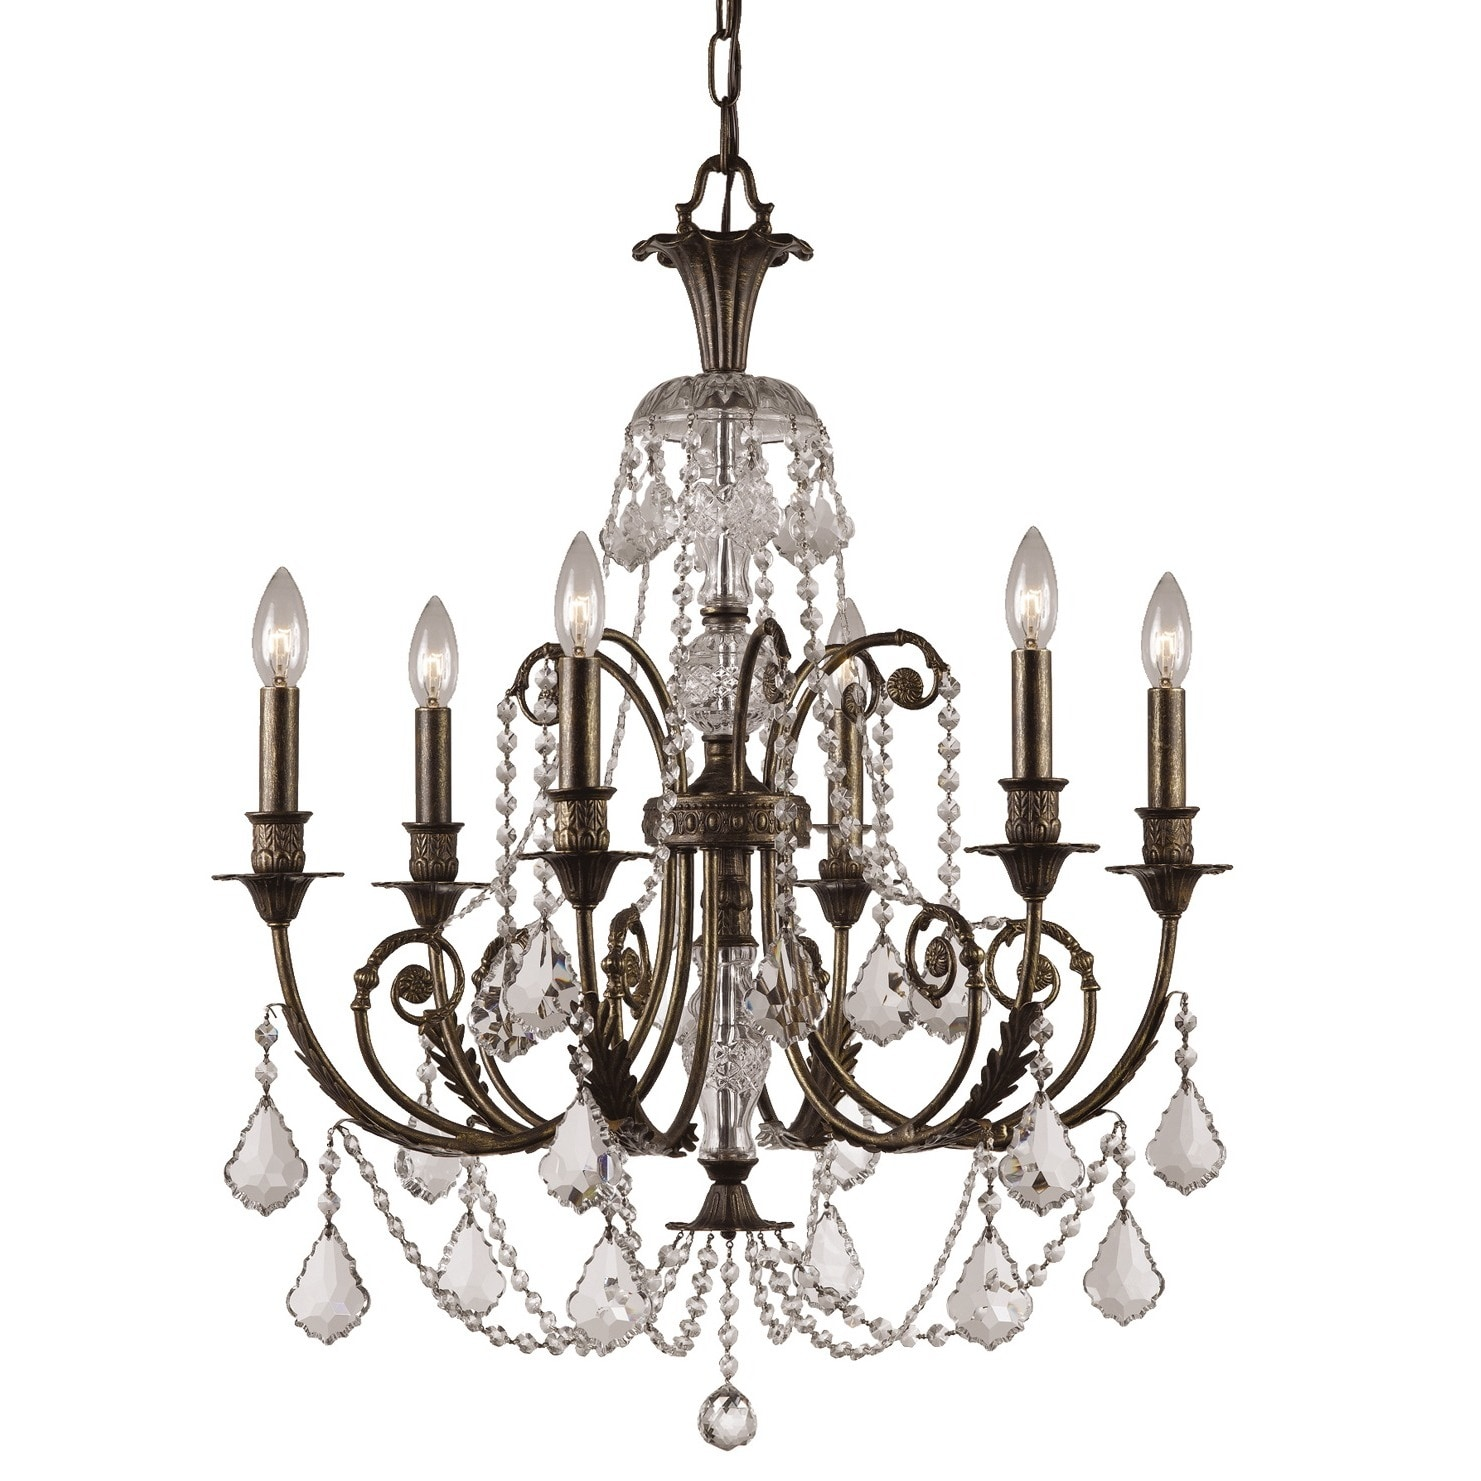 Crystorama Regis Collection 6 light English Bronze Crystal